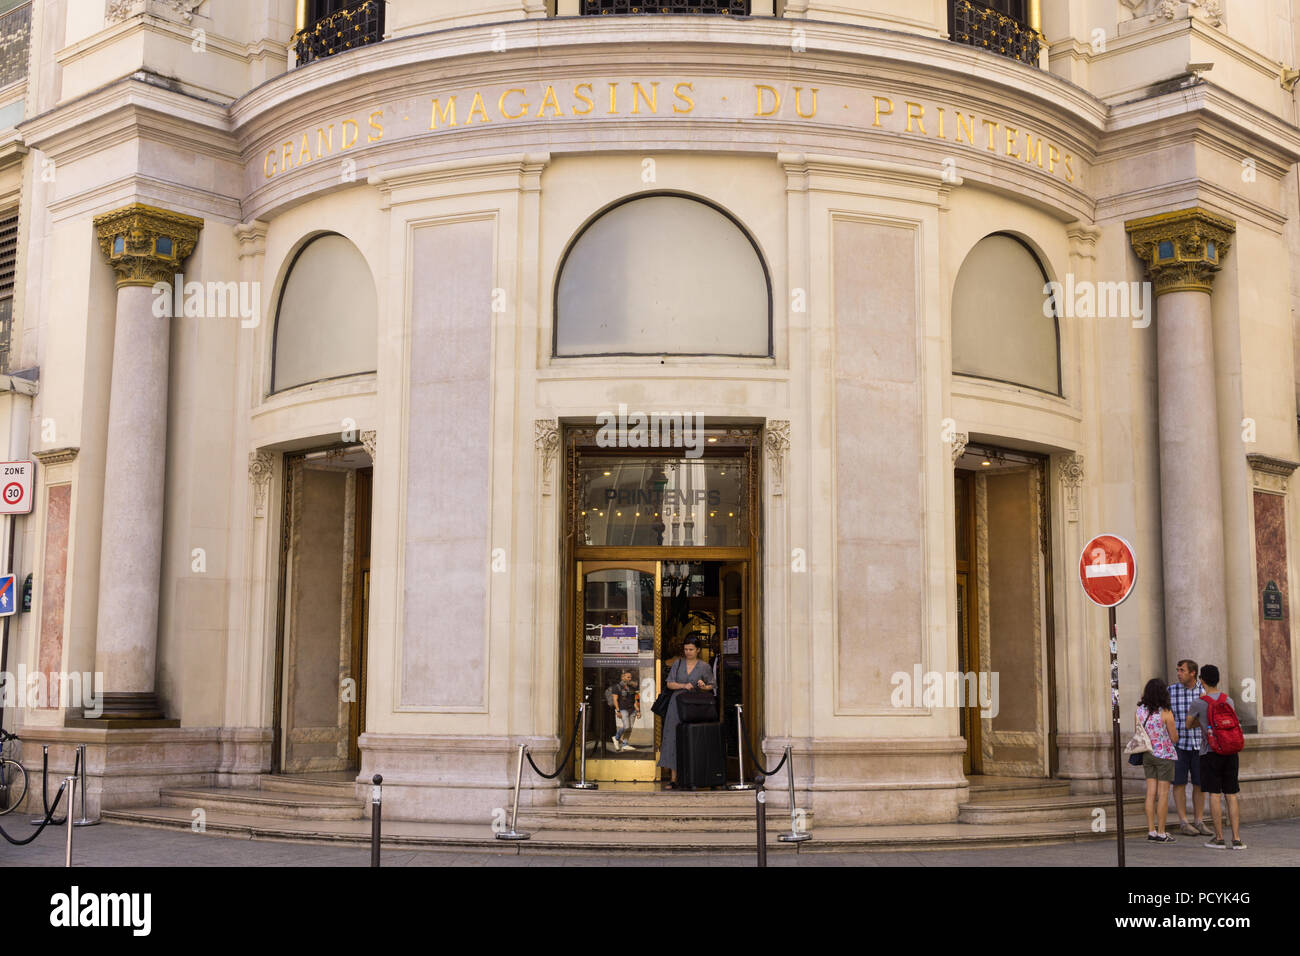 Printemps department store in the 9th arrondissement in Paris, France. - Stock Image